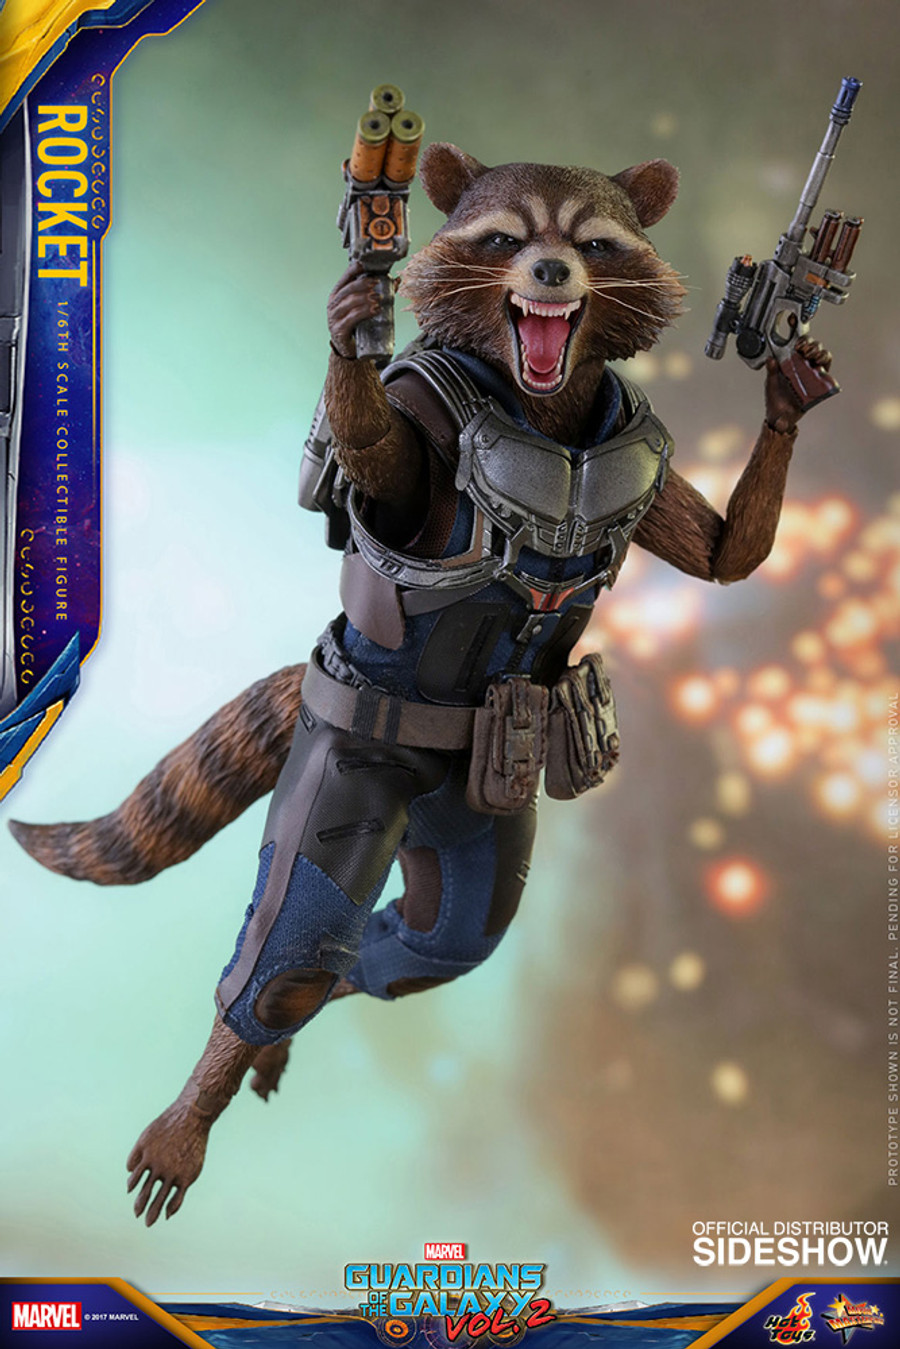 Hot Toys - Guardians of the Galaxy Vol 2 - Rocket